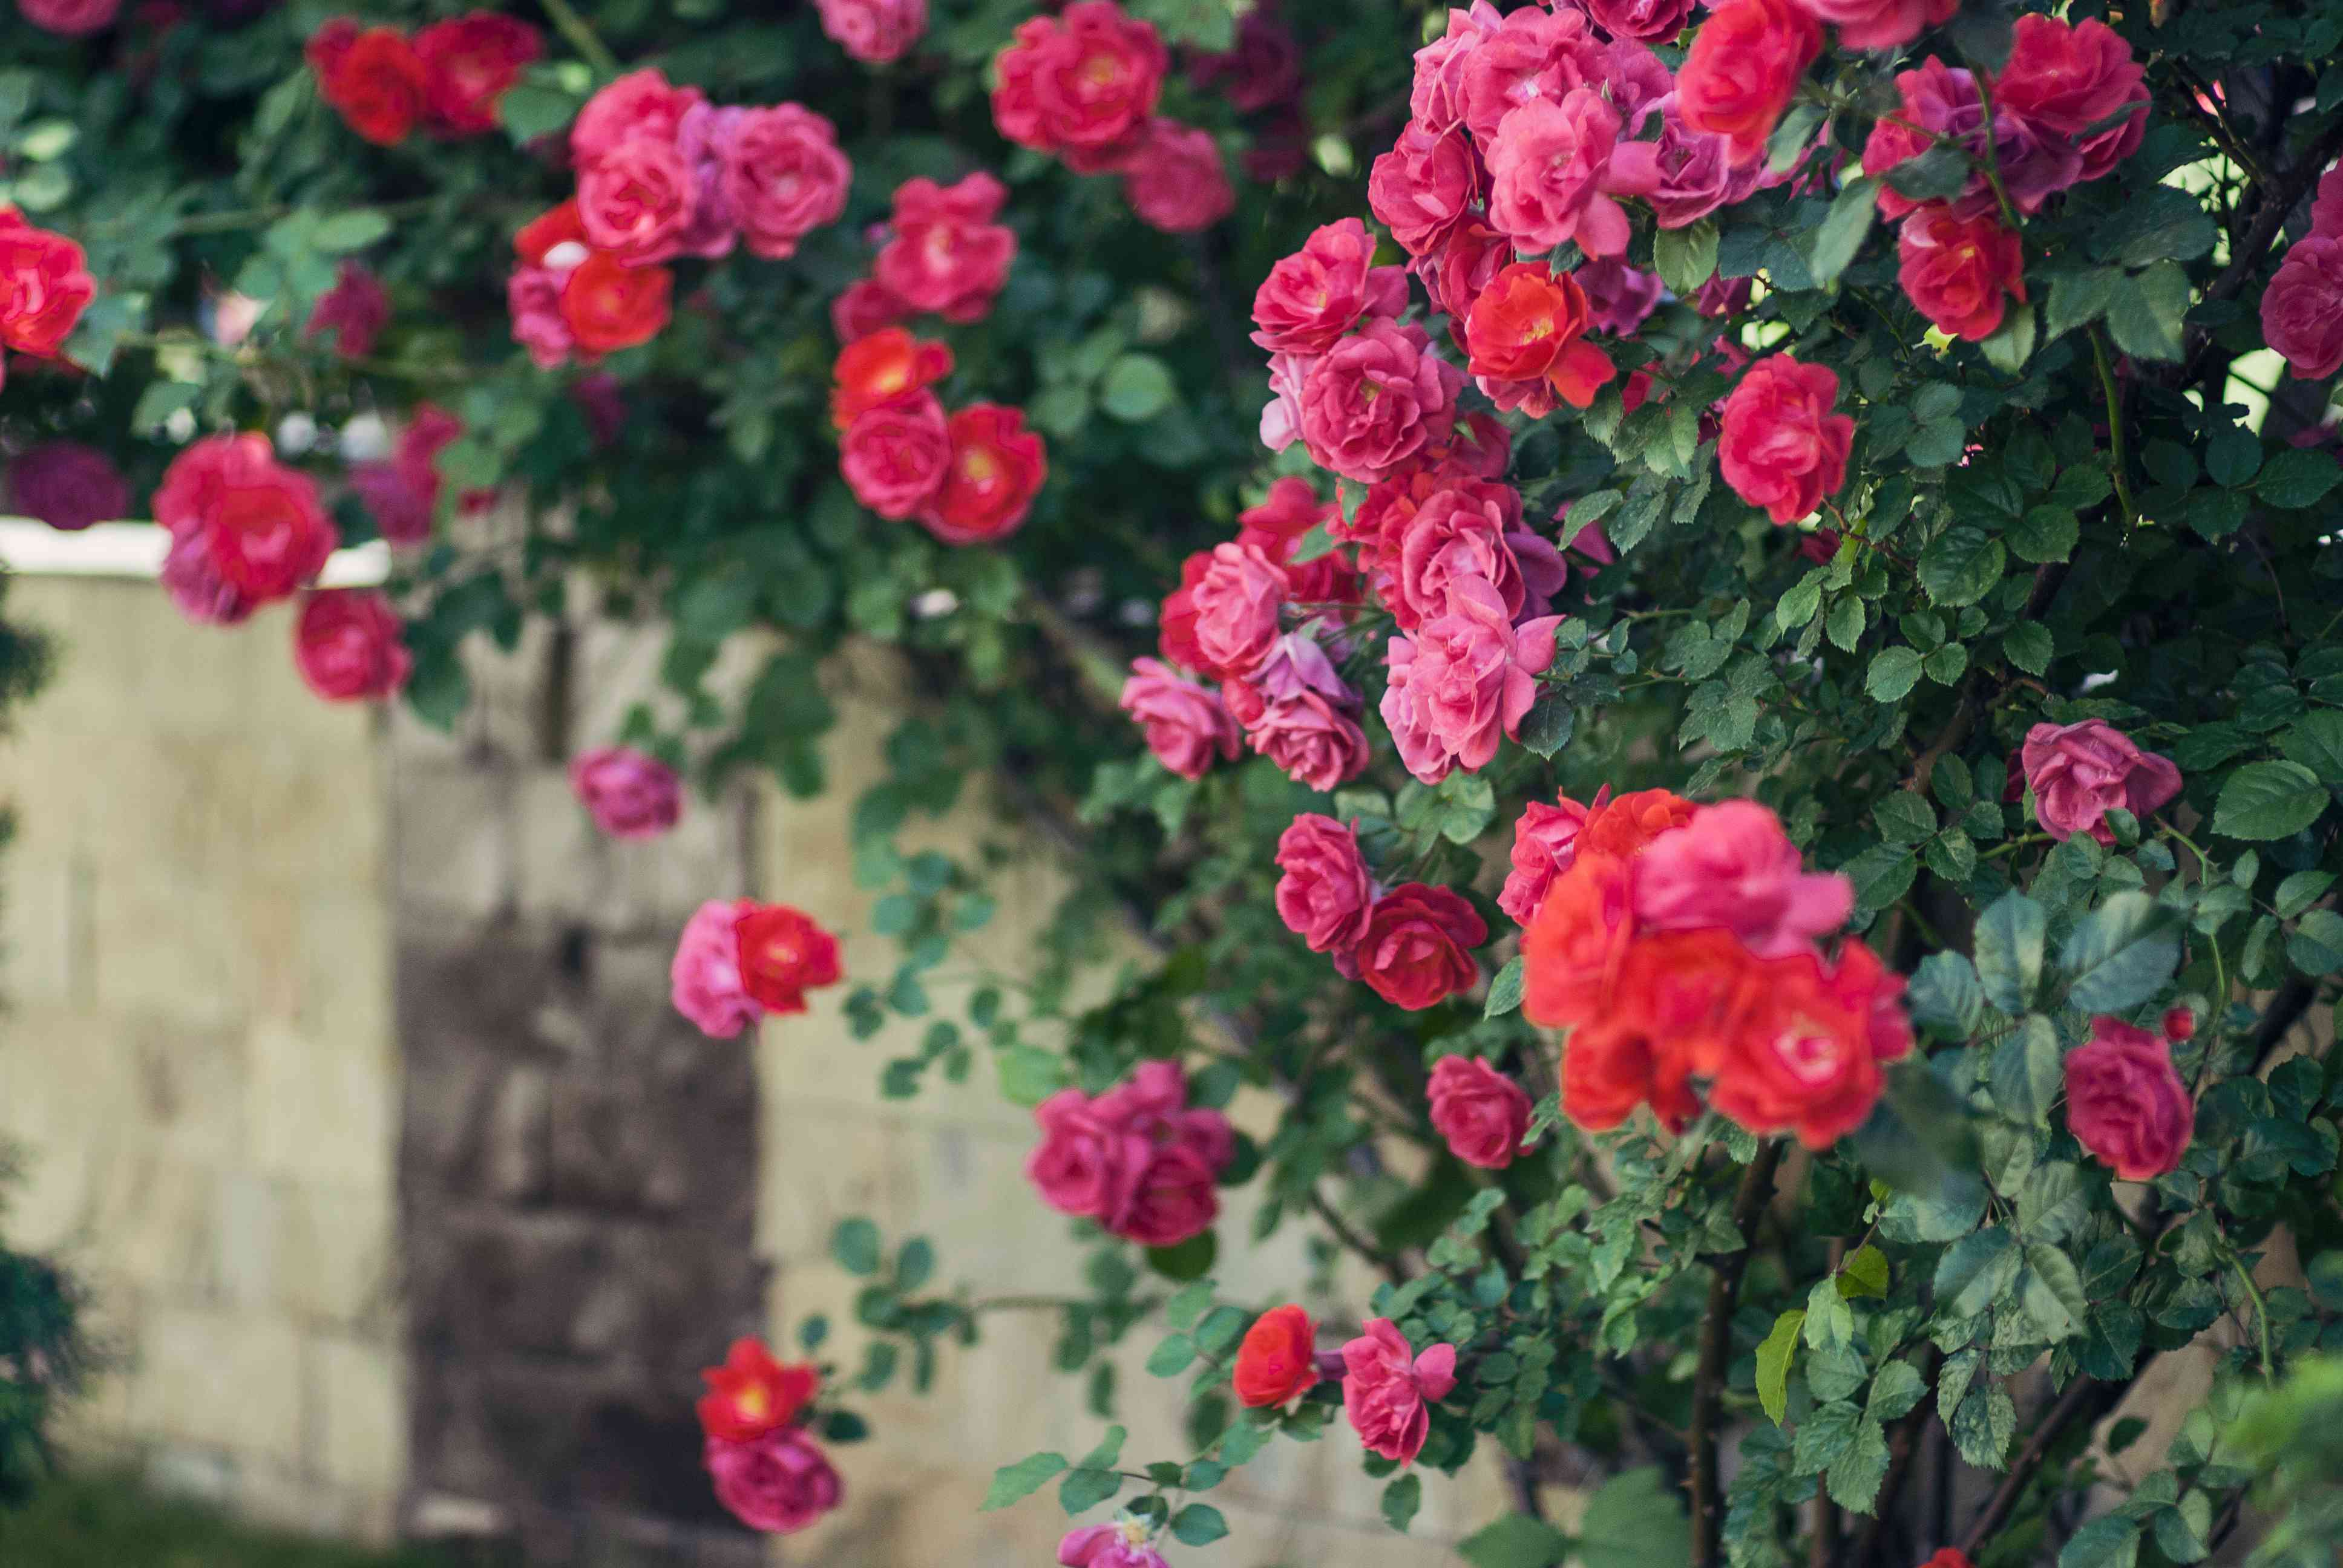 Red roses climbing on fence